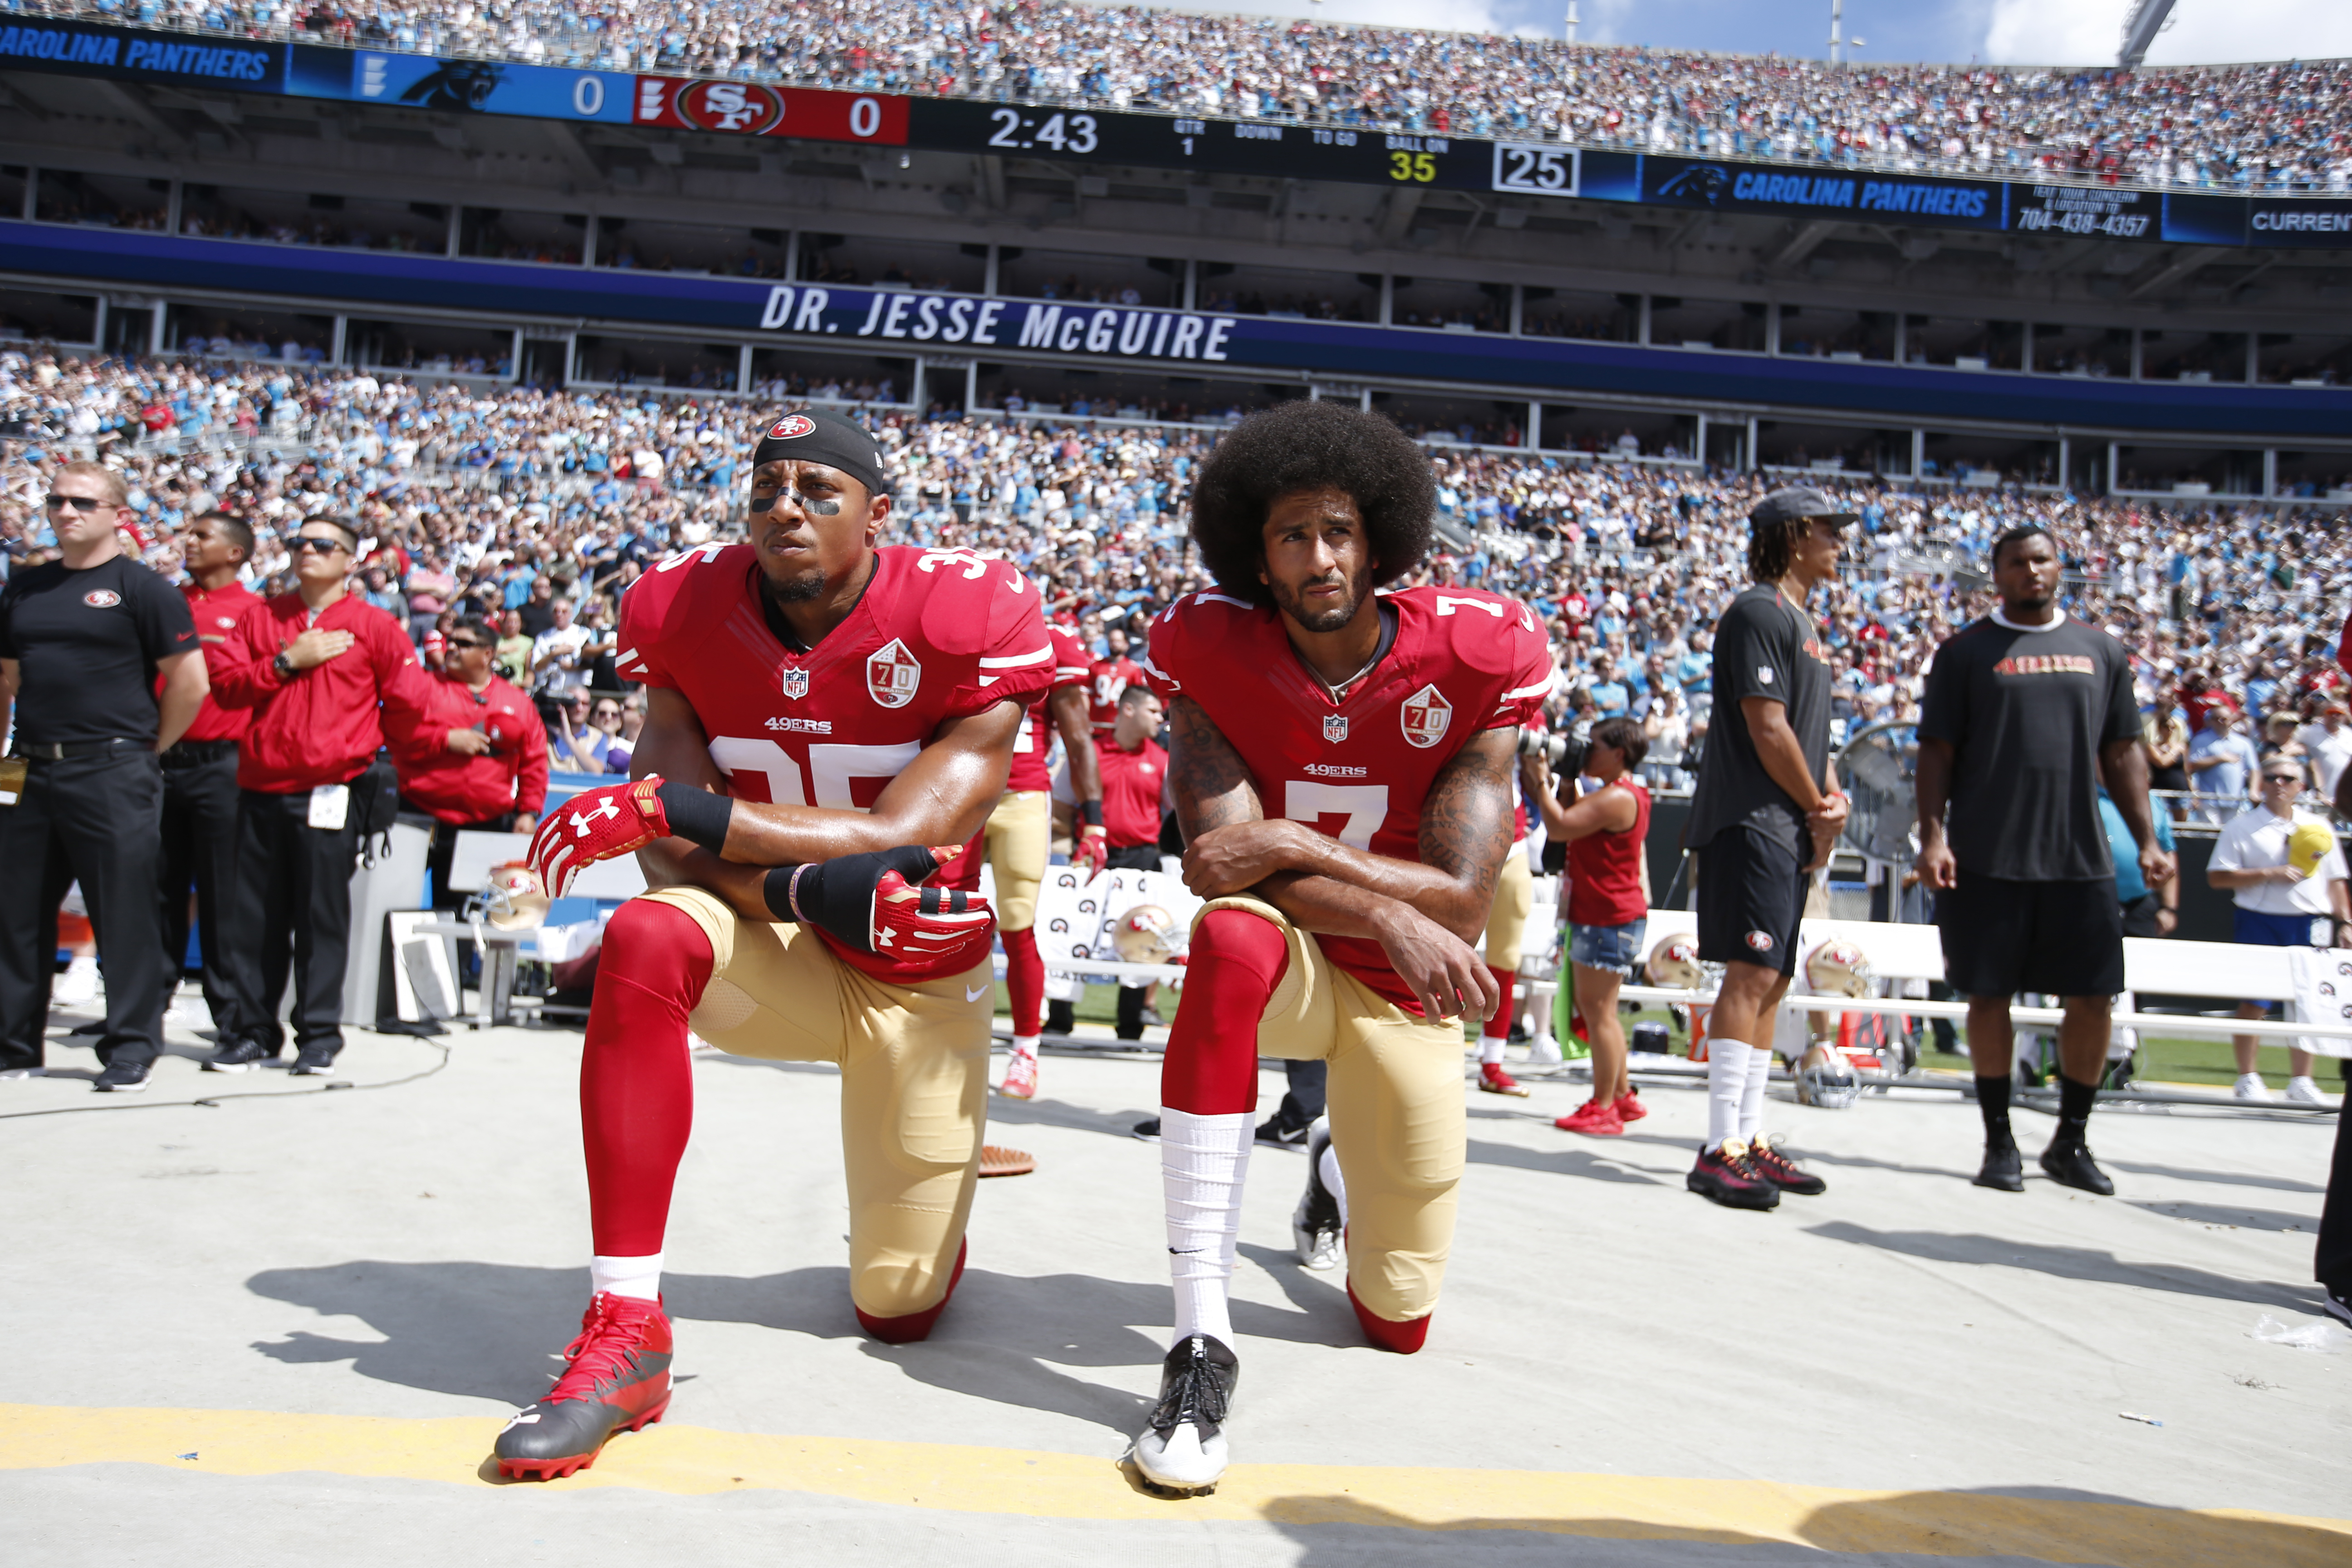 Eric Reid #35 and Colin Kaepernick #7 of the San Francisco 49ers kneel on the sideline, during the anthem, prior to the game against the Carolina Panthers at Bank of America Stadium in Charlotte, N.C., on Sept. 18, 2016.